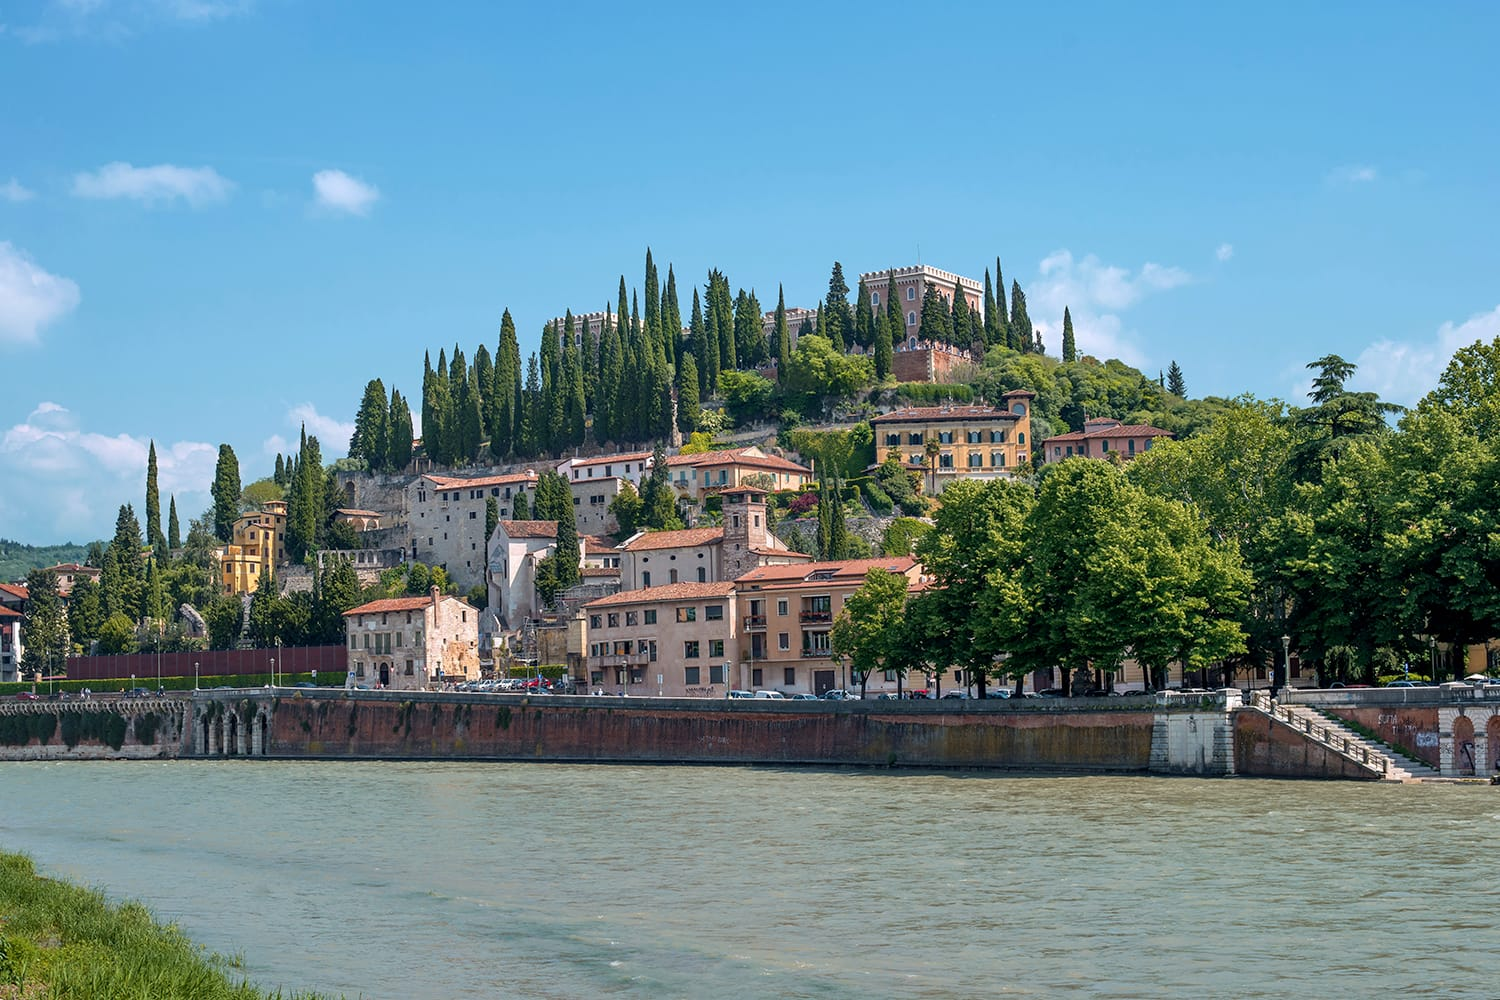 View of the castle of San Pietro in the city of Verona, Italy